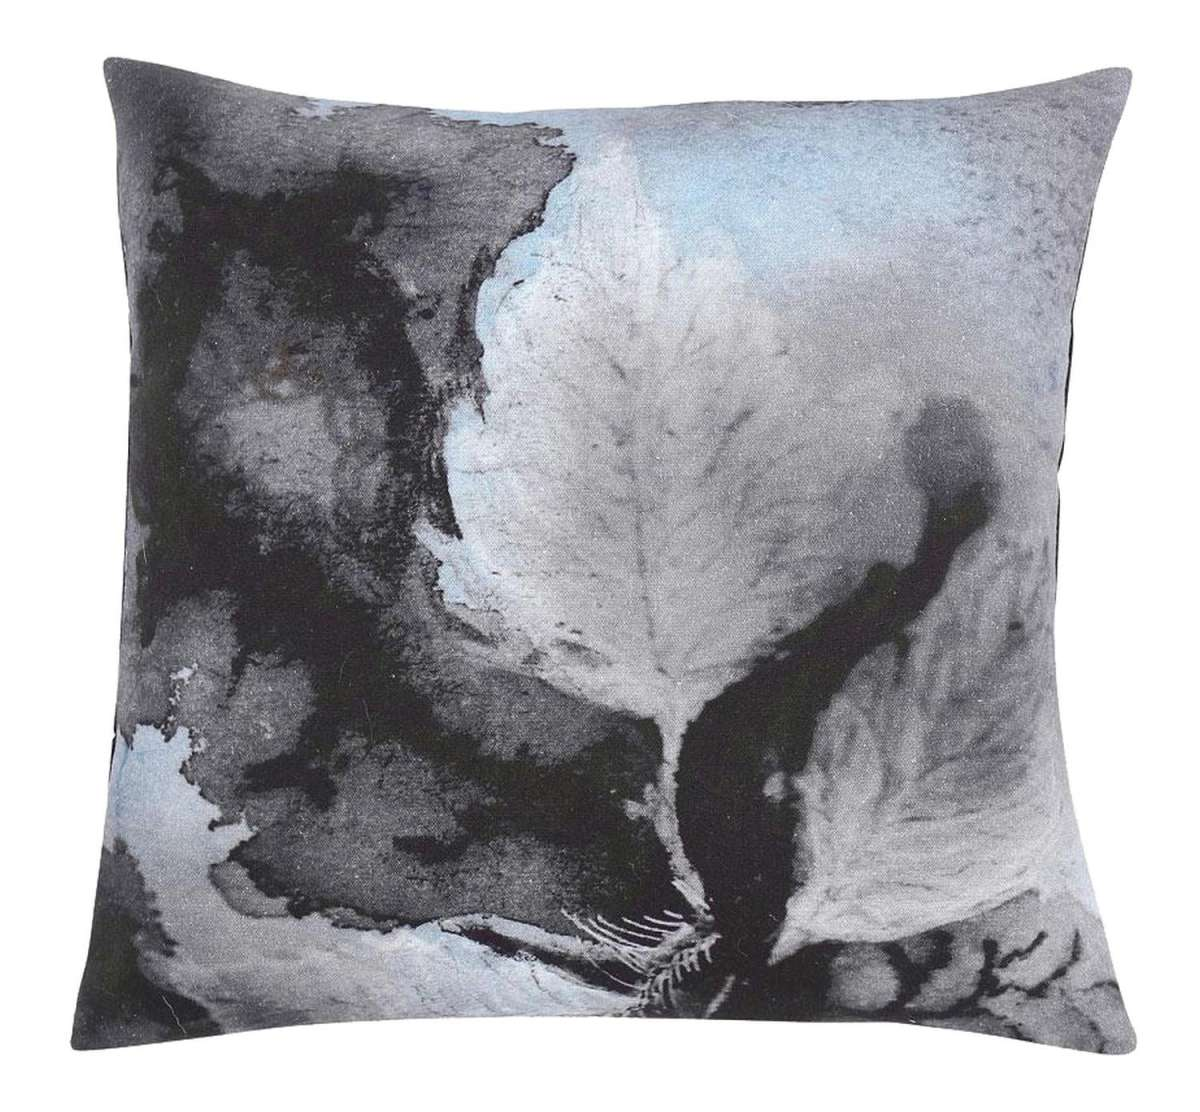 A Simple Mess Cushion Cover Majse 45x45 Cm